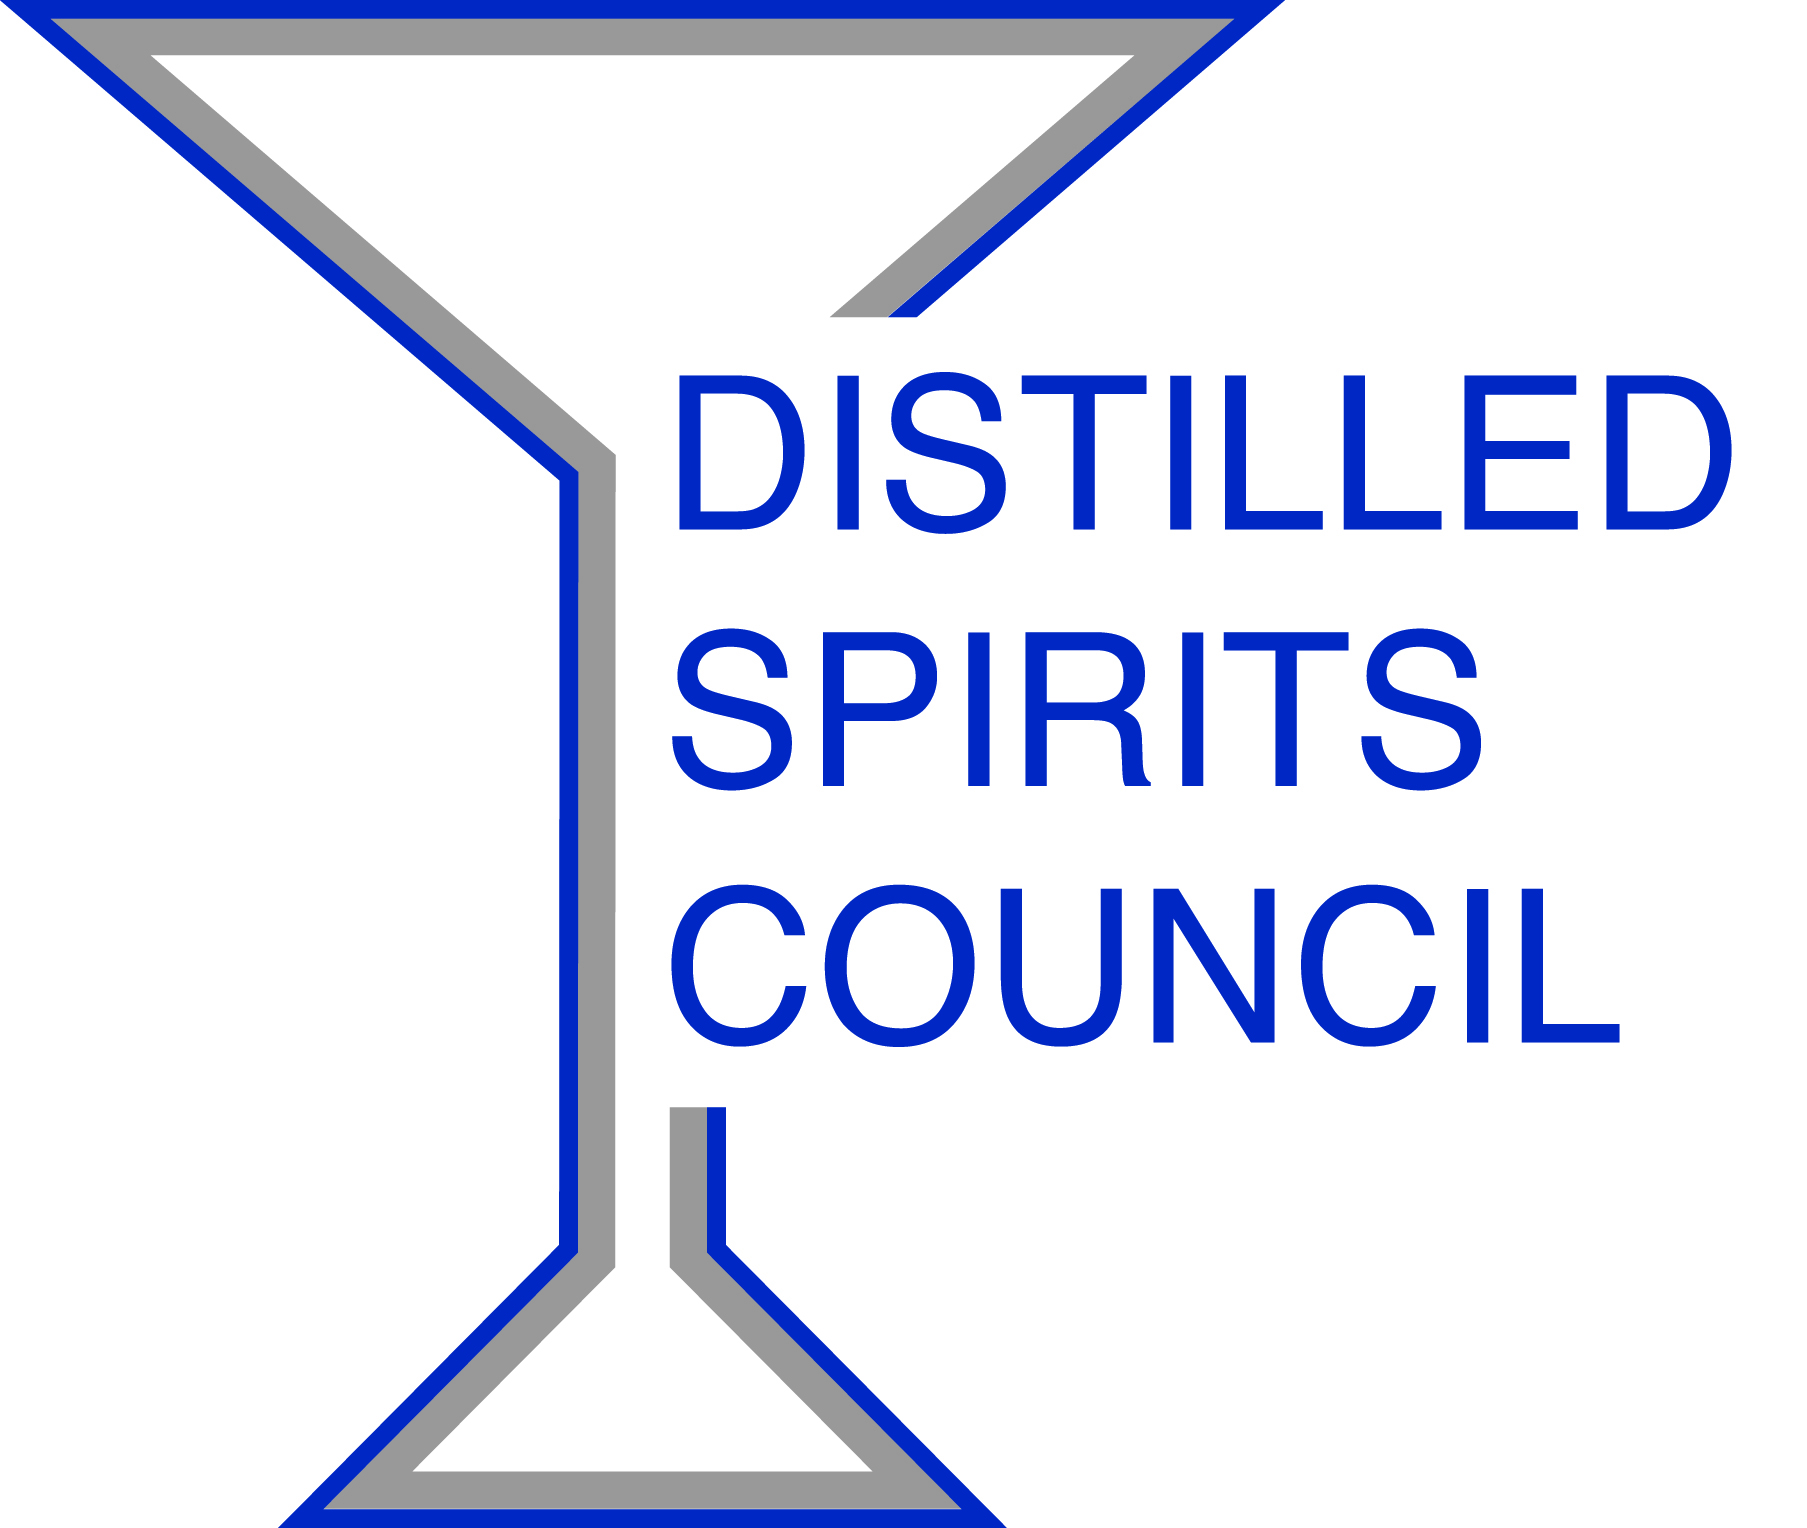 Distilled Spirits Council of the United States (DISCUS) logo